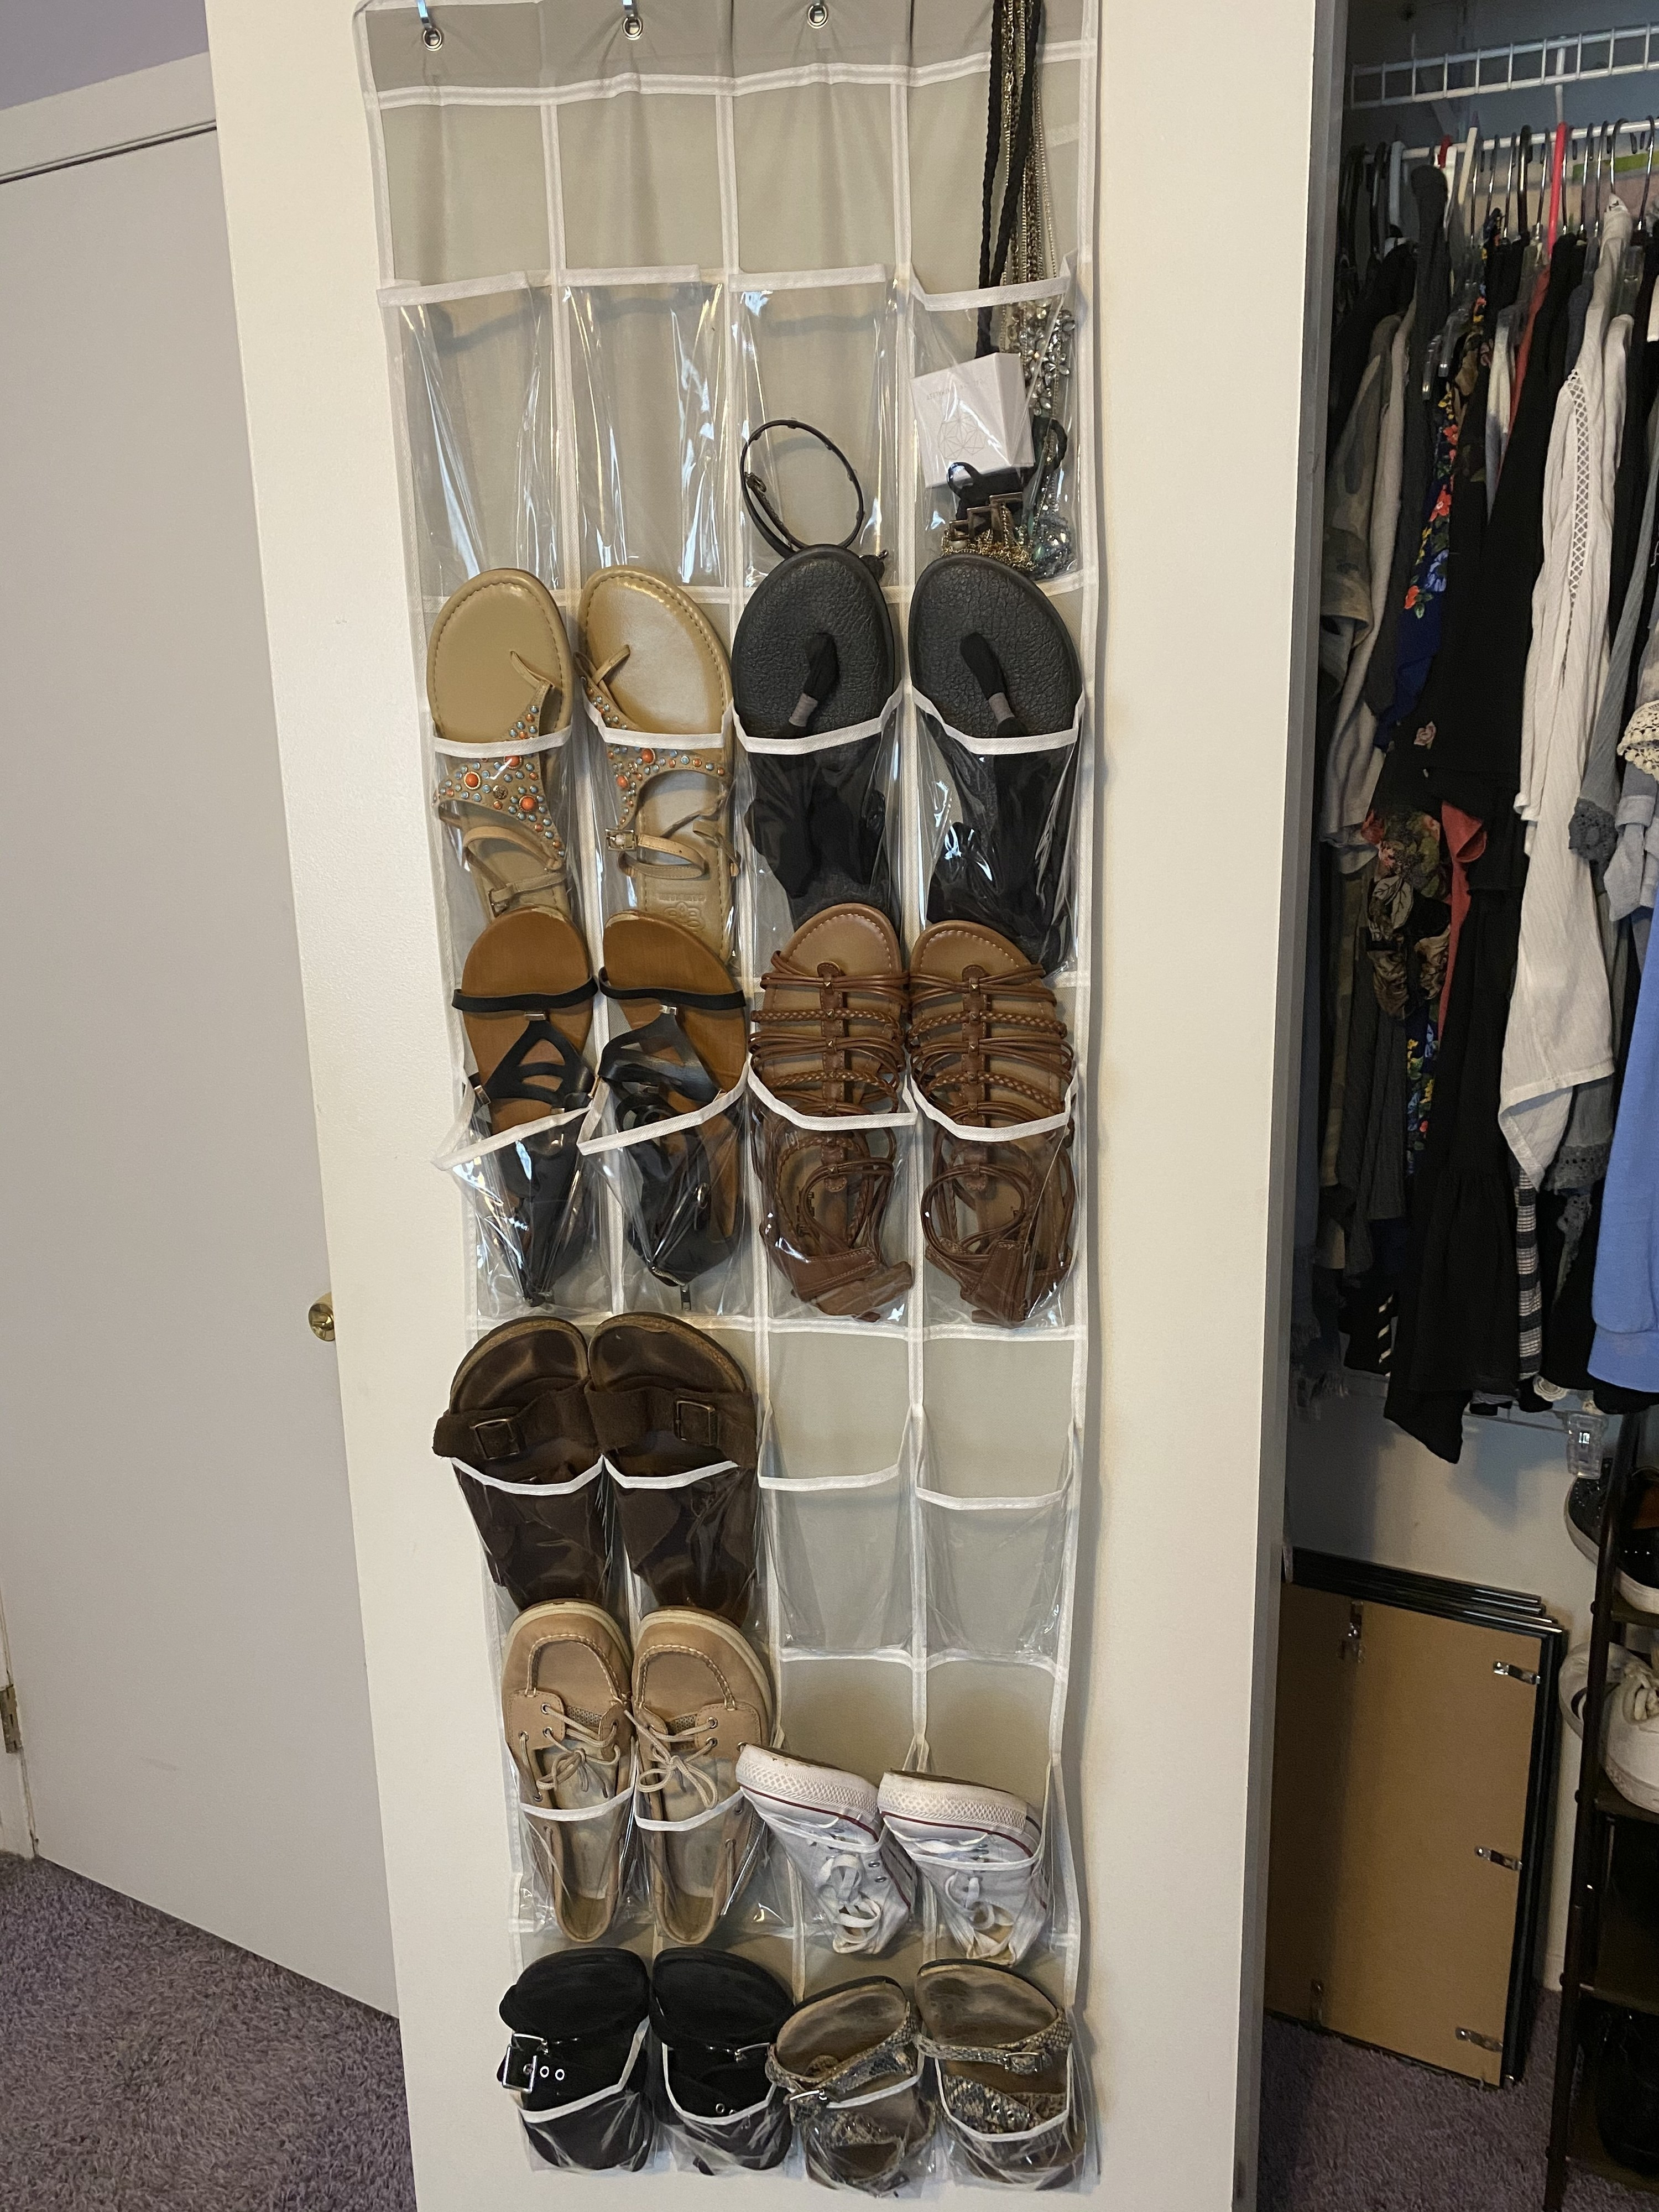 the clear shoe organizer with shoes inside